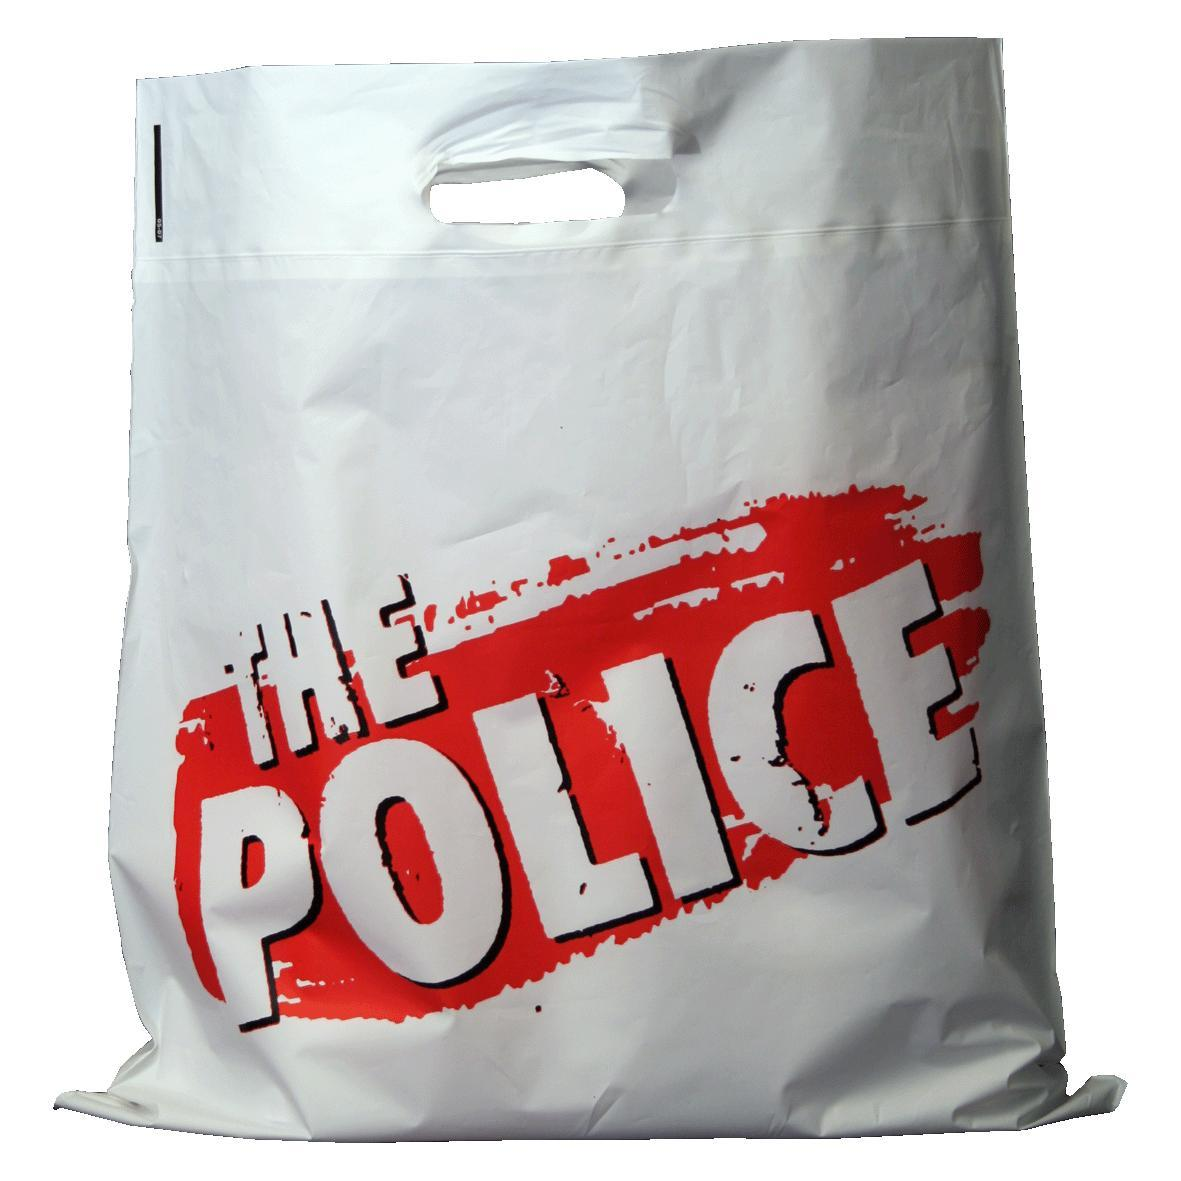 The Police 2007 Tour Bags